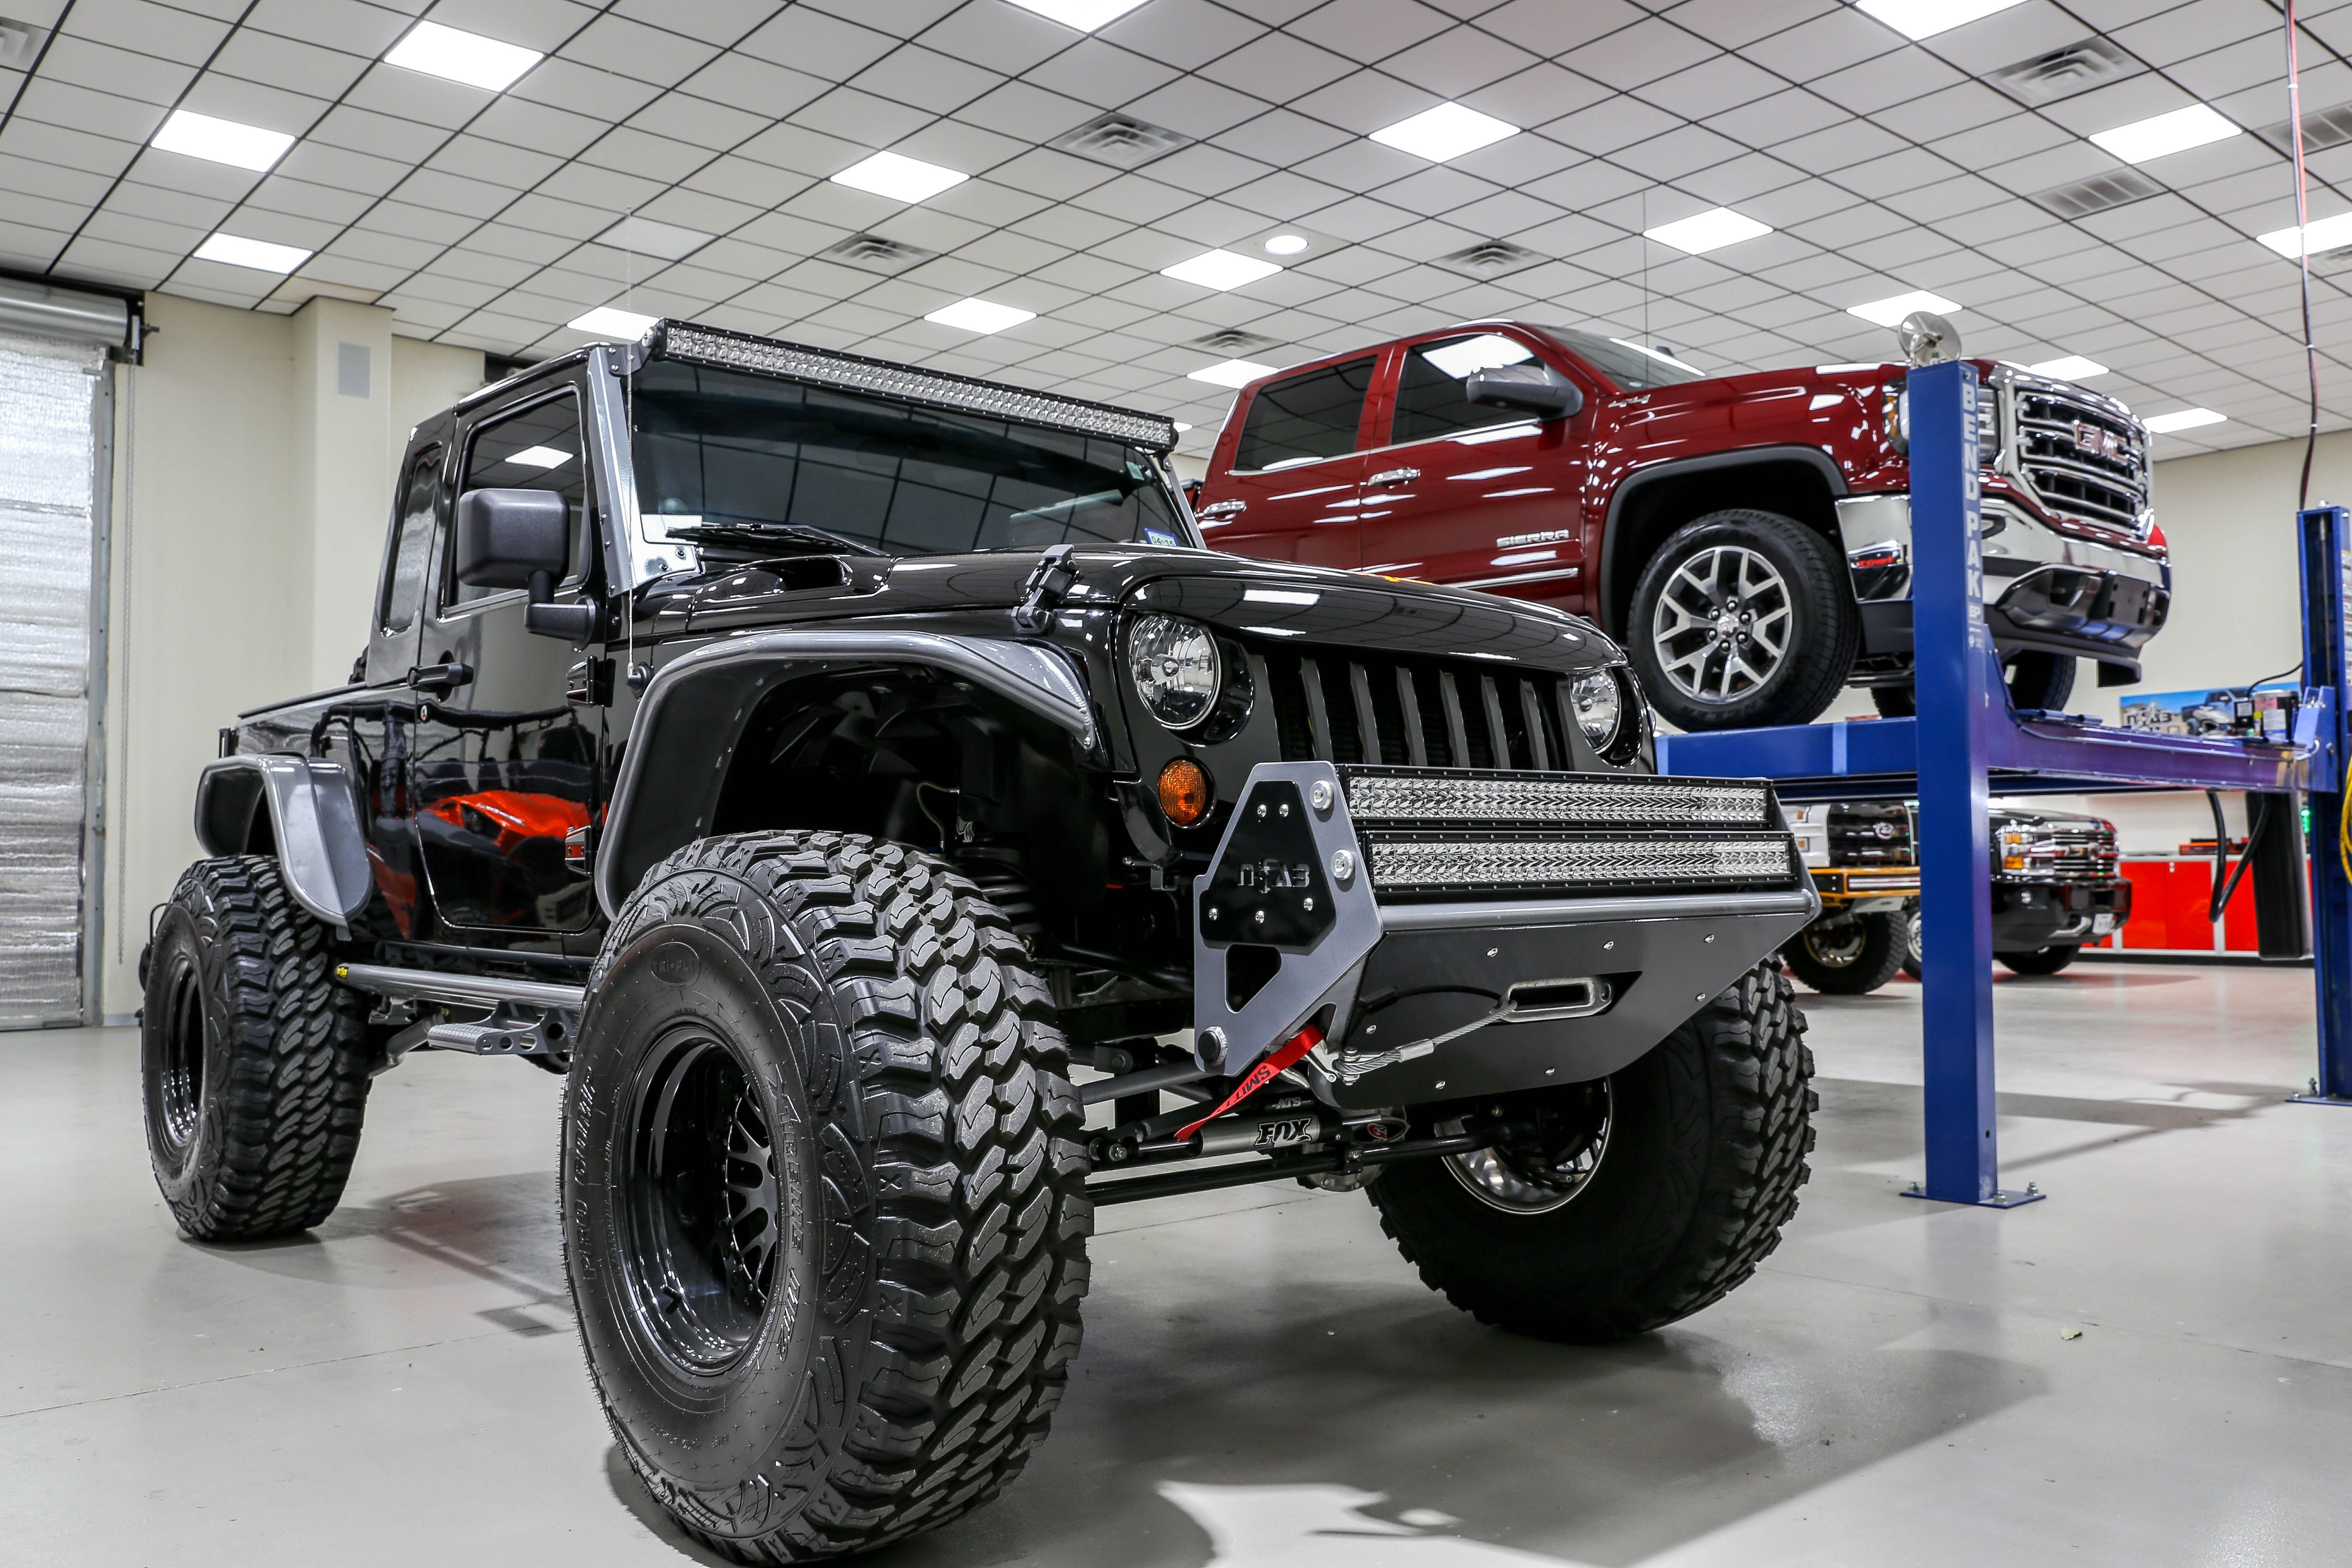 nFab's JK8 featuring our NightHawk Light Brow... Their